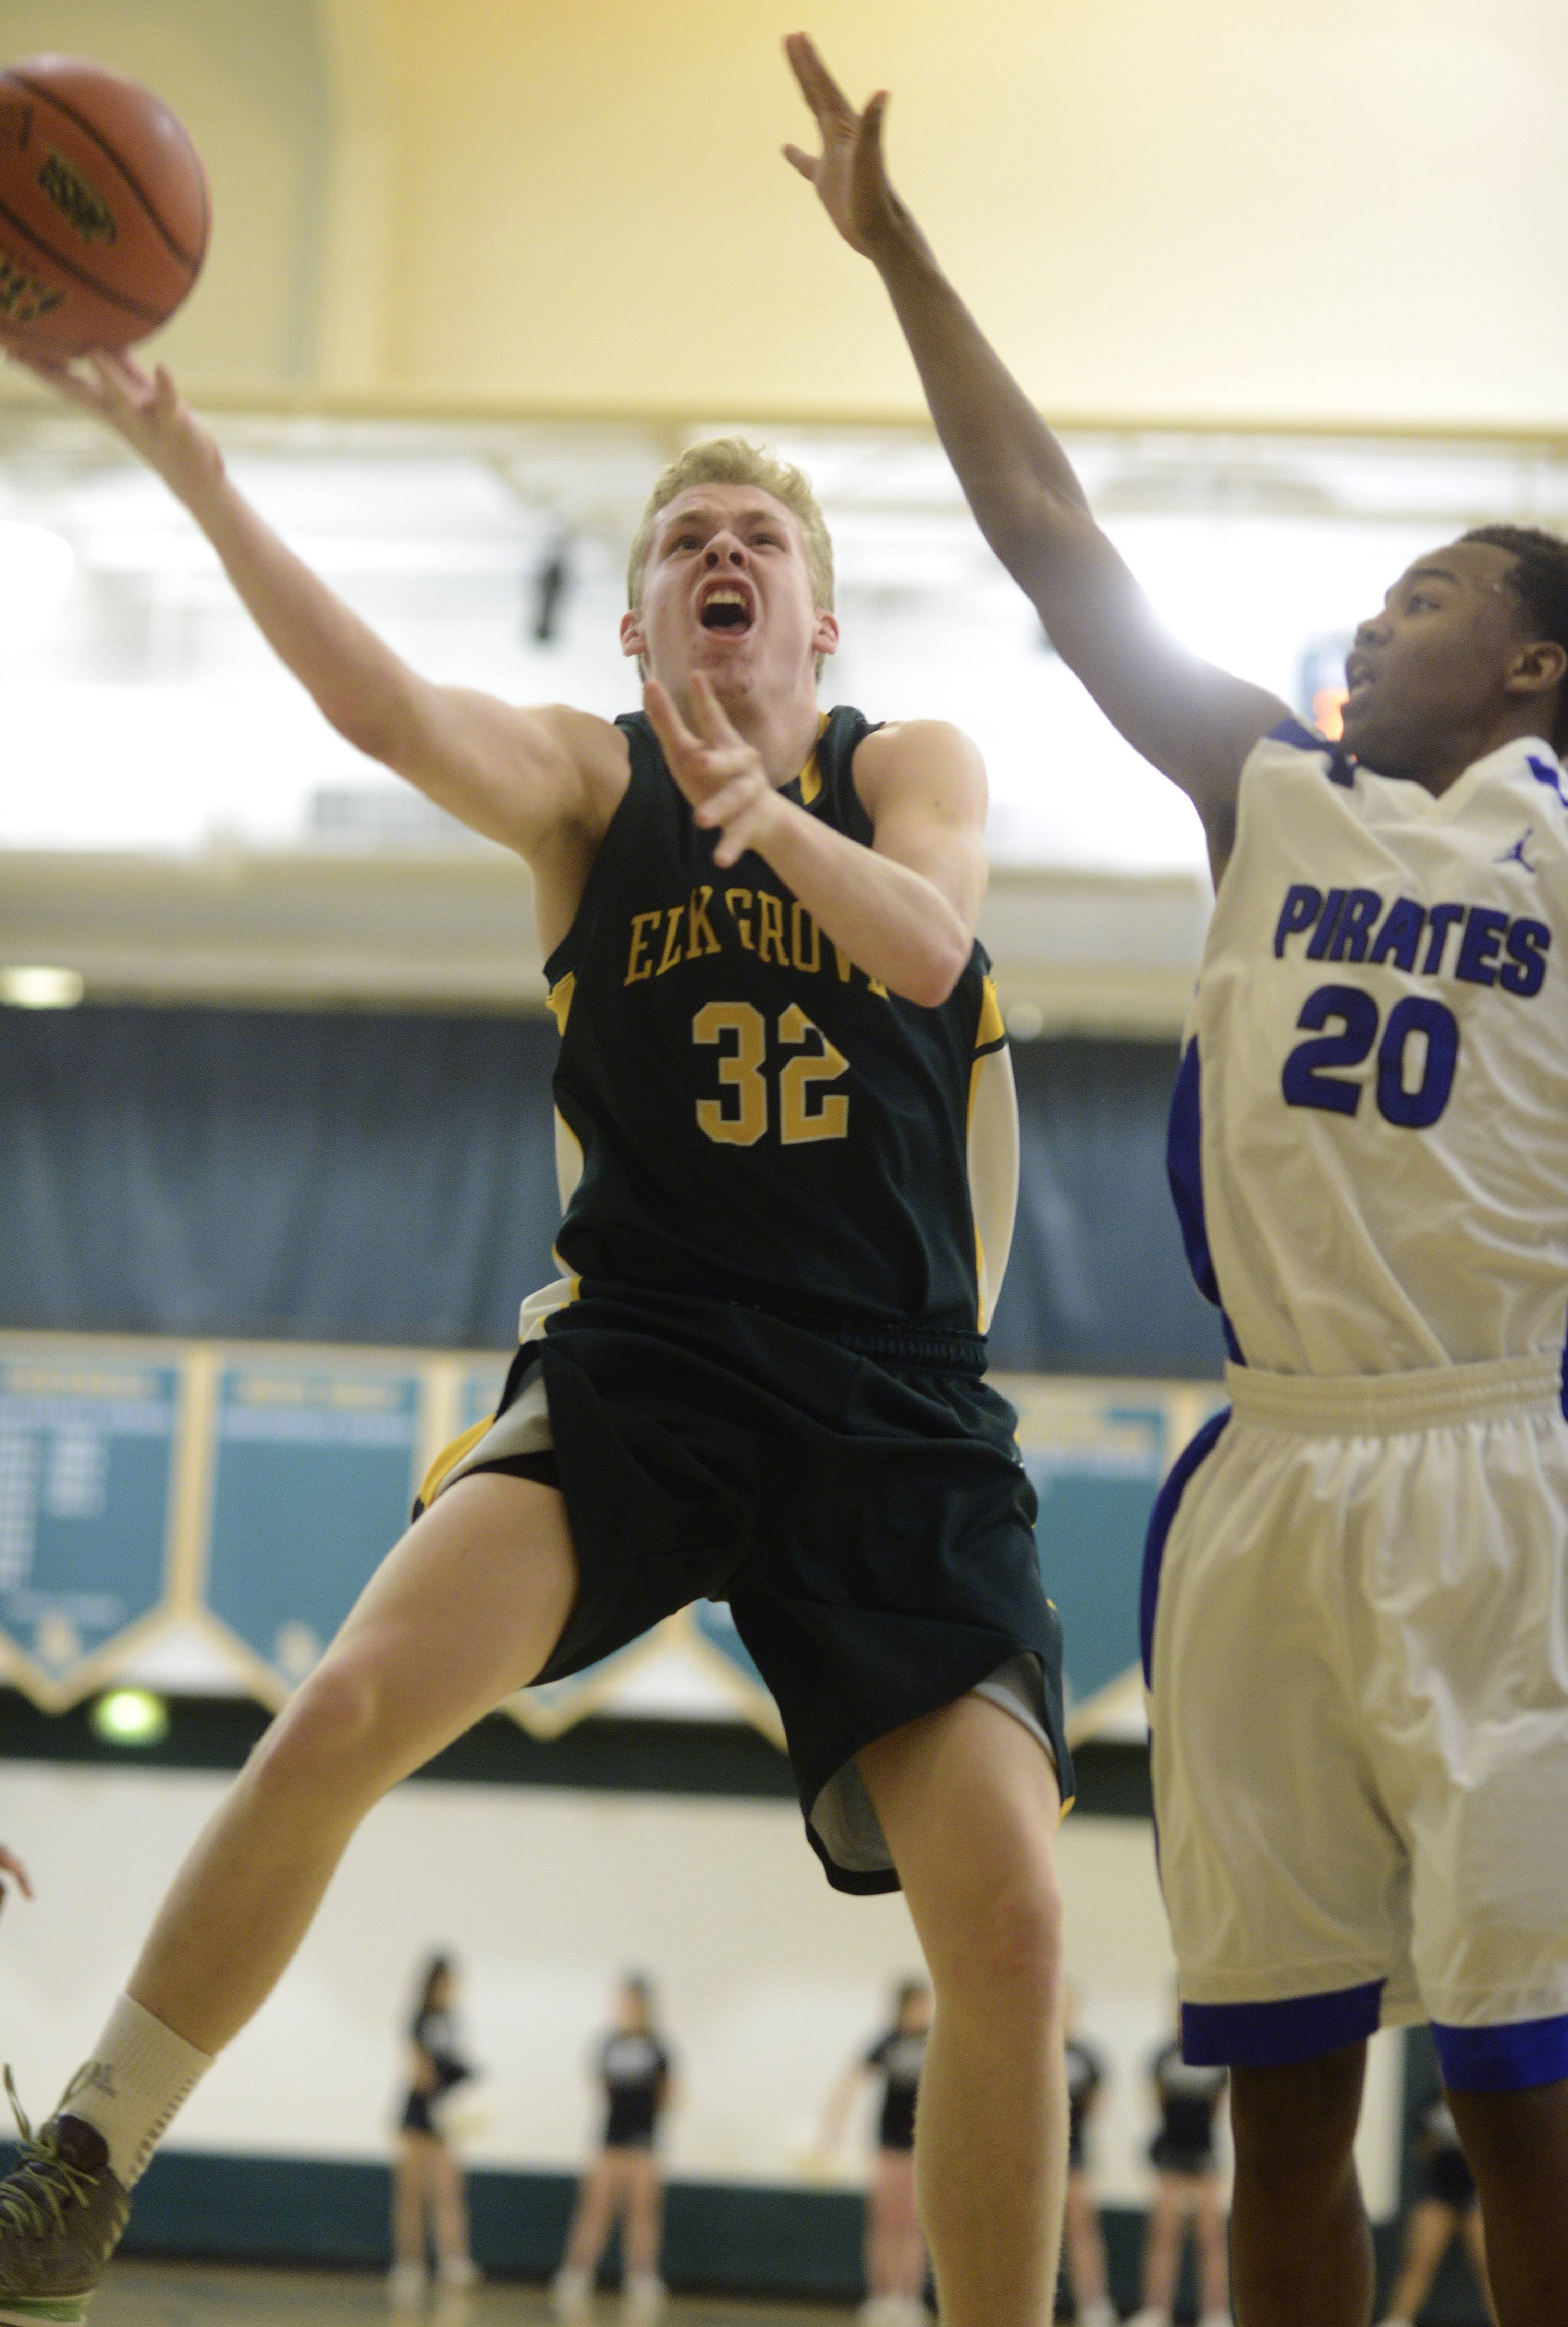 Elk Grove's Scott Furlong, left, drives to the basket against Proviso East's Tyler Chisom during Tuesday's regional semifinal at Elk Grove.